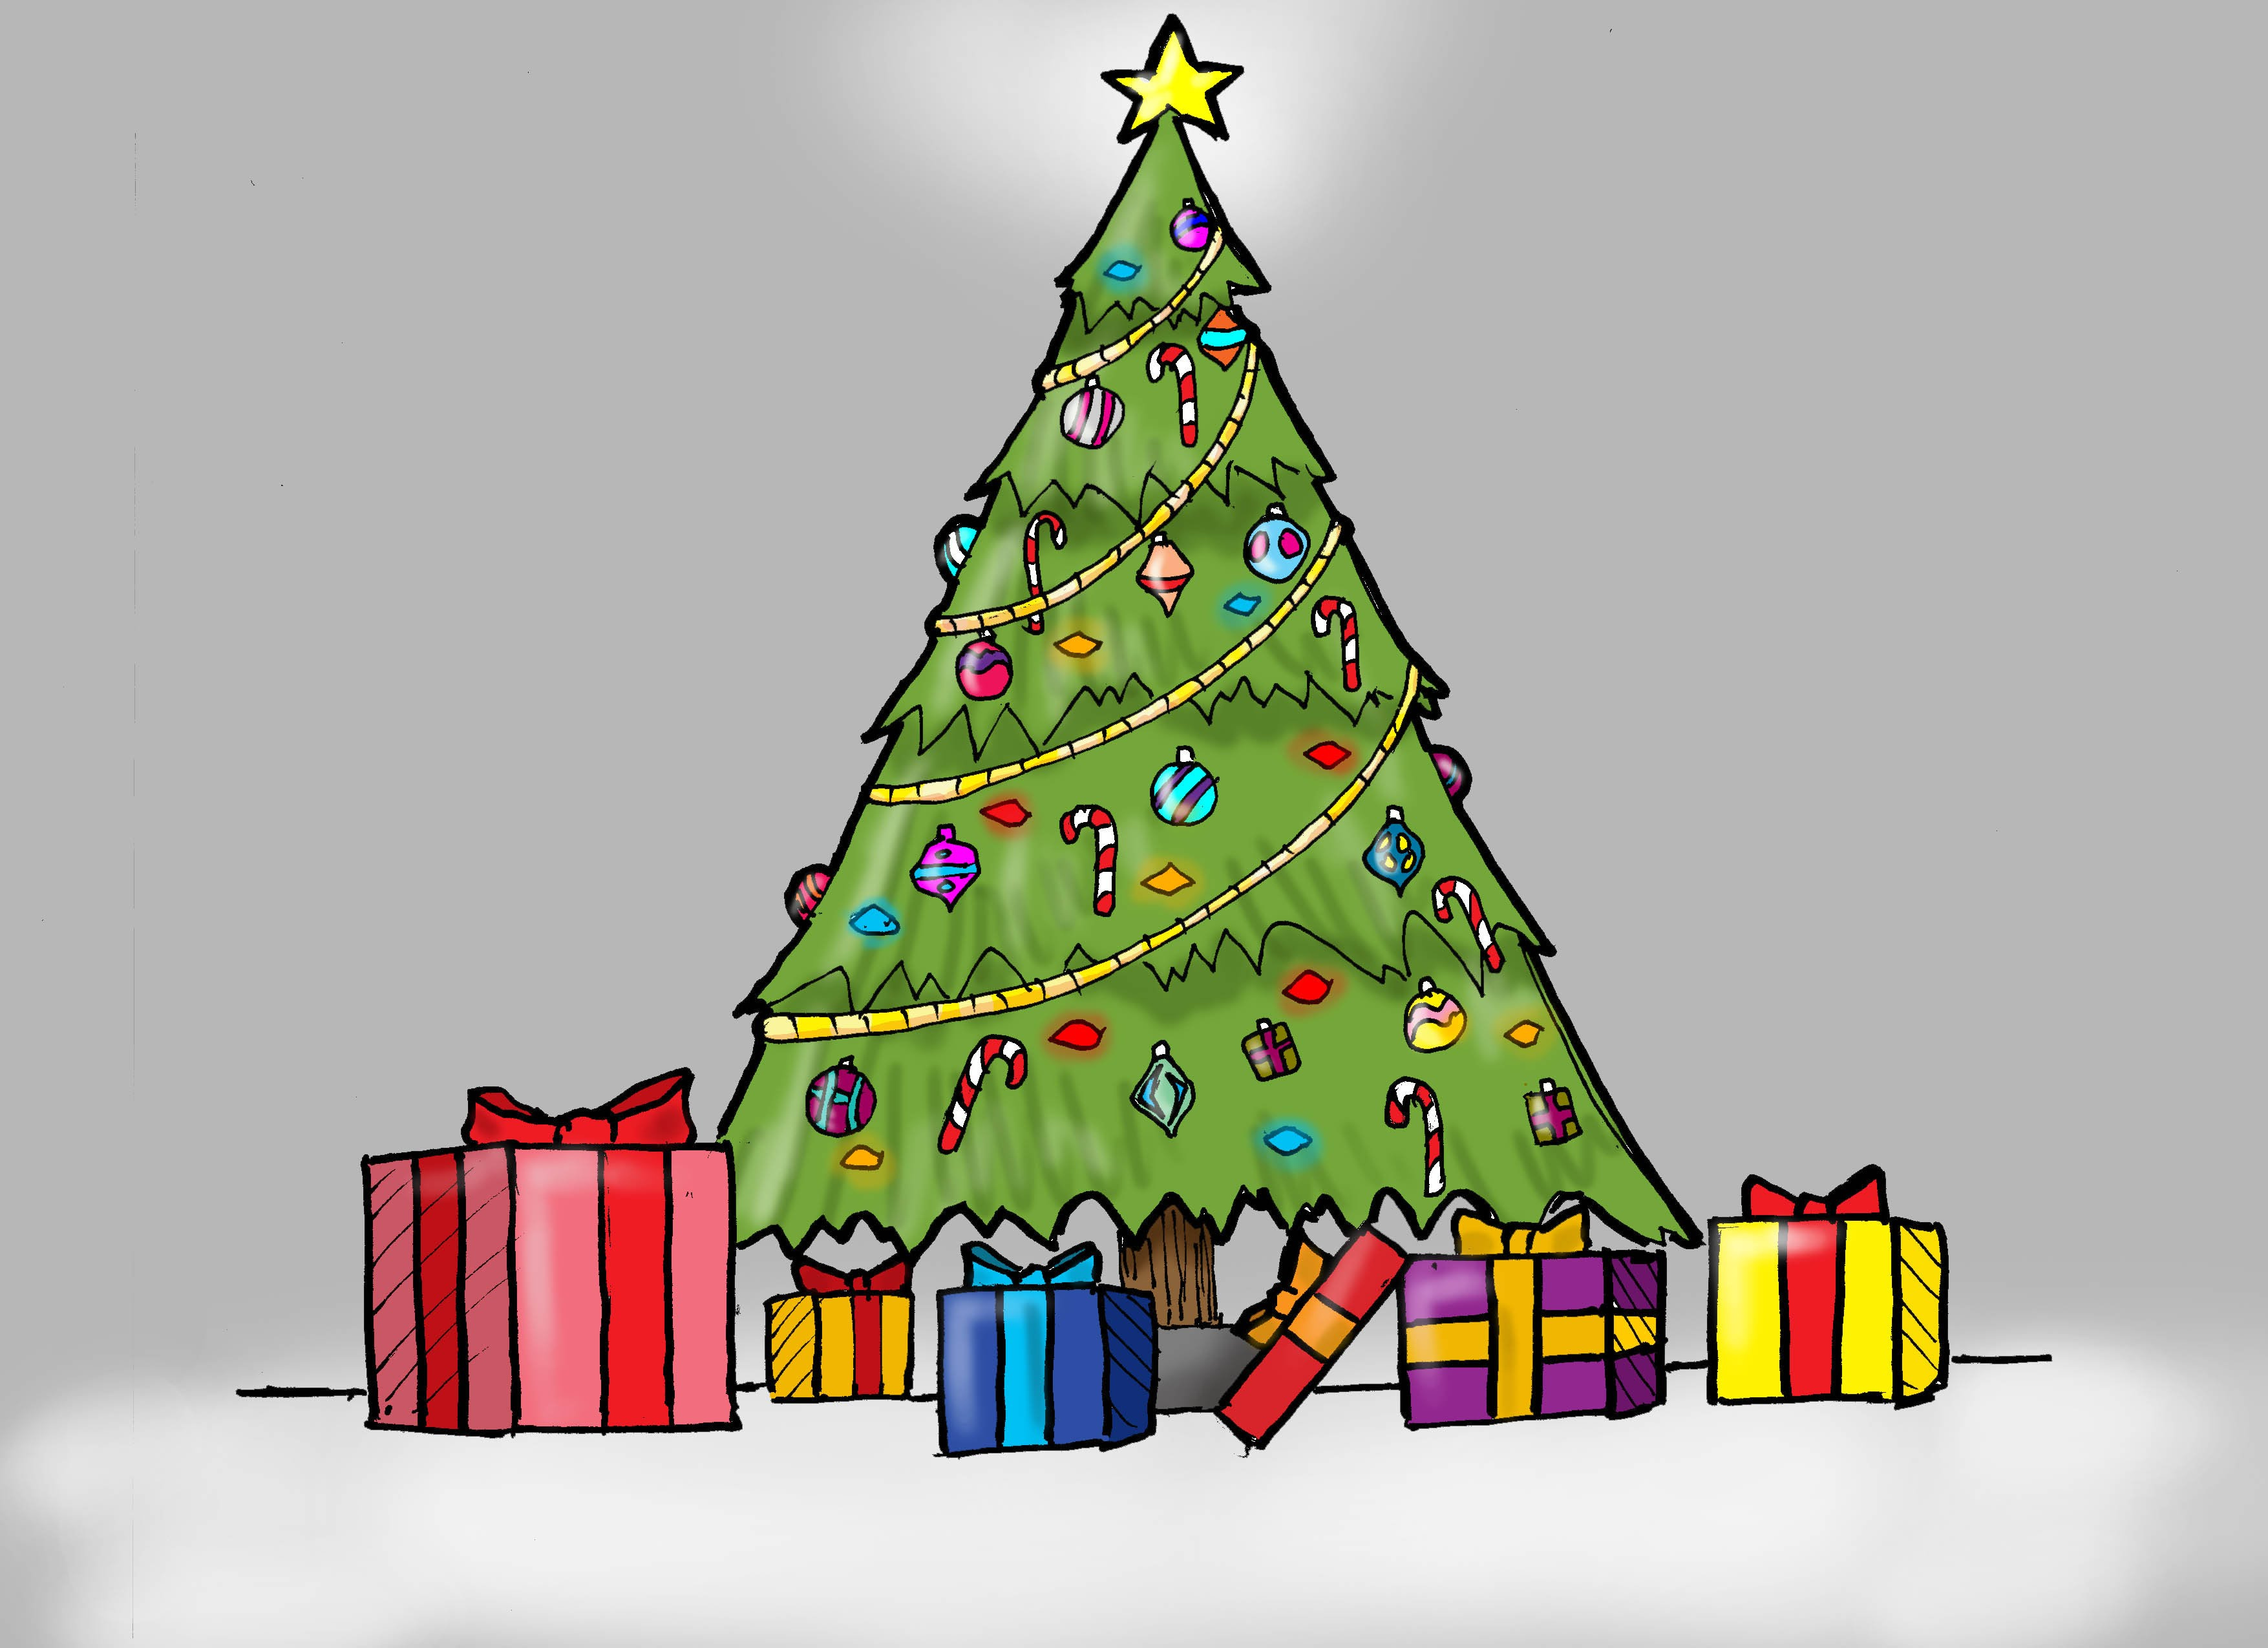 3509x2550 how to draw a christmas tree with presents for kids - Simple Christmas Tree